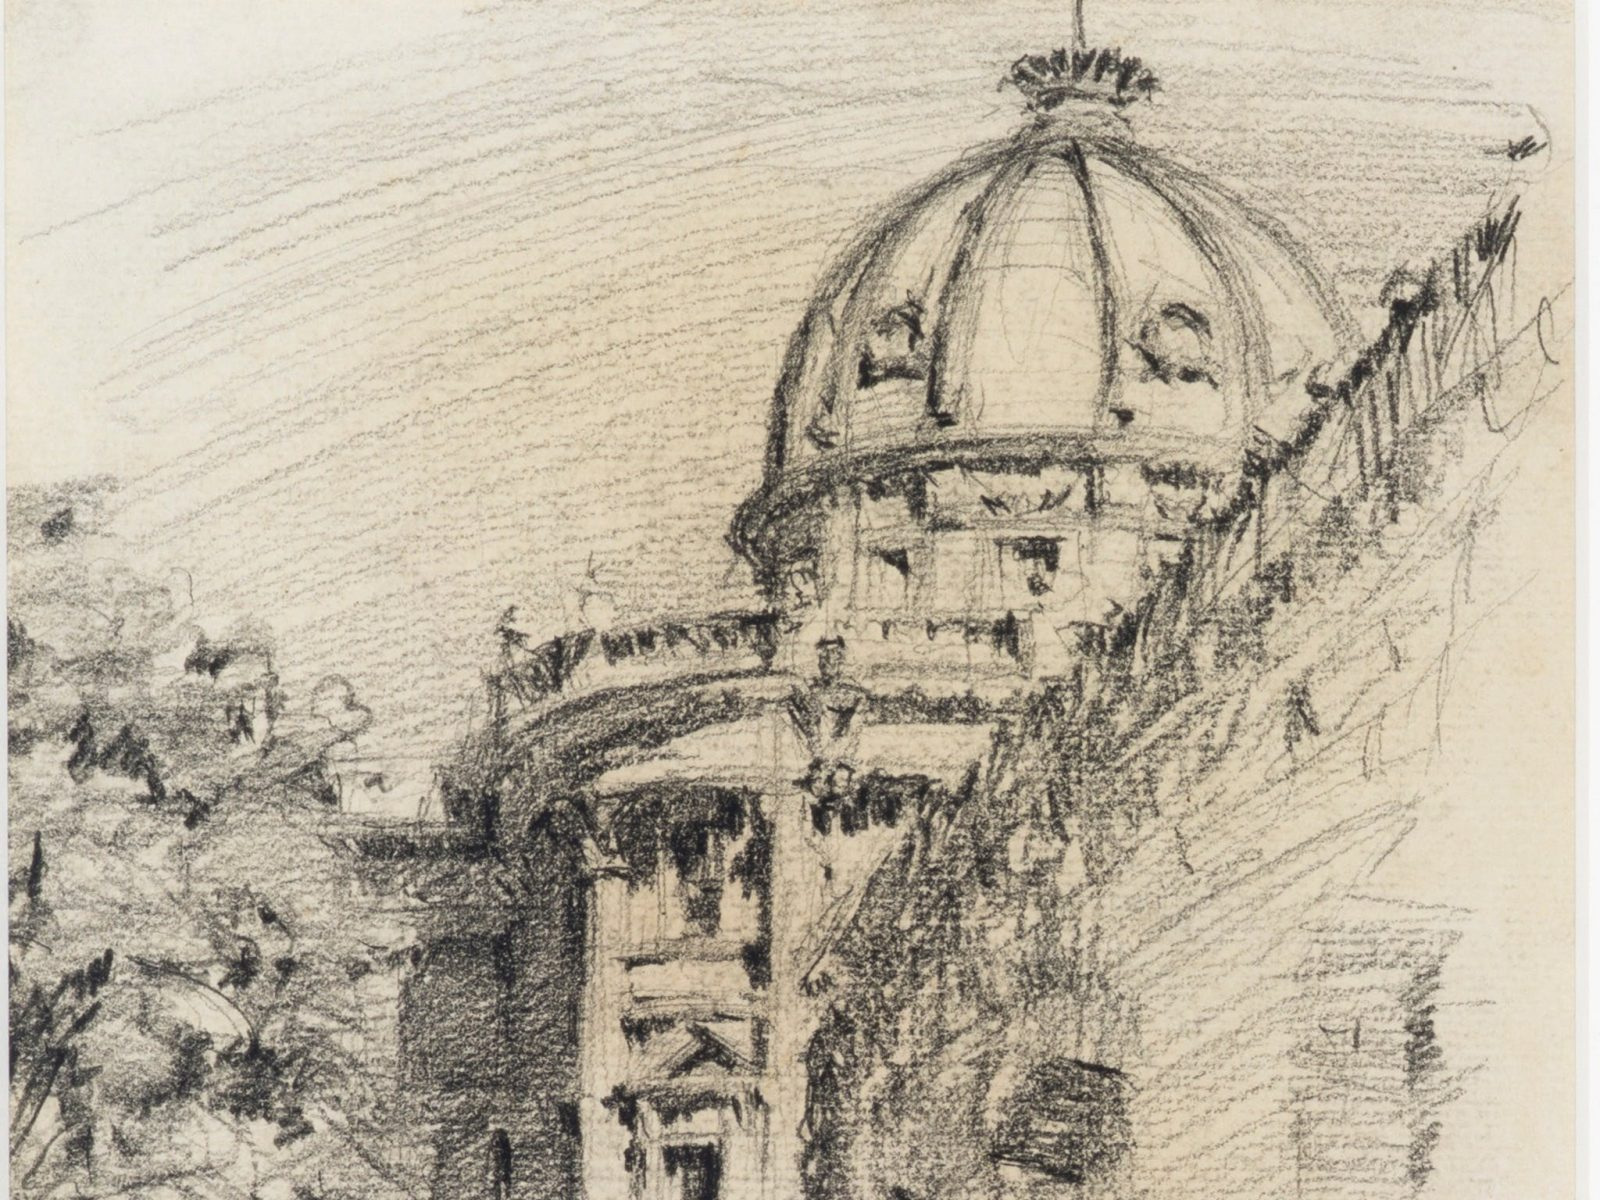 Customs House, 1914, pencil on paper